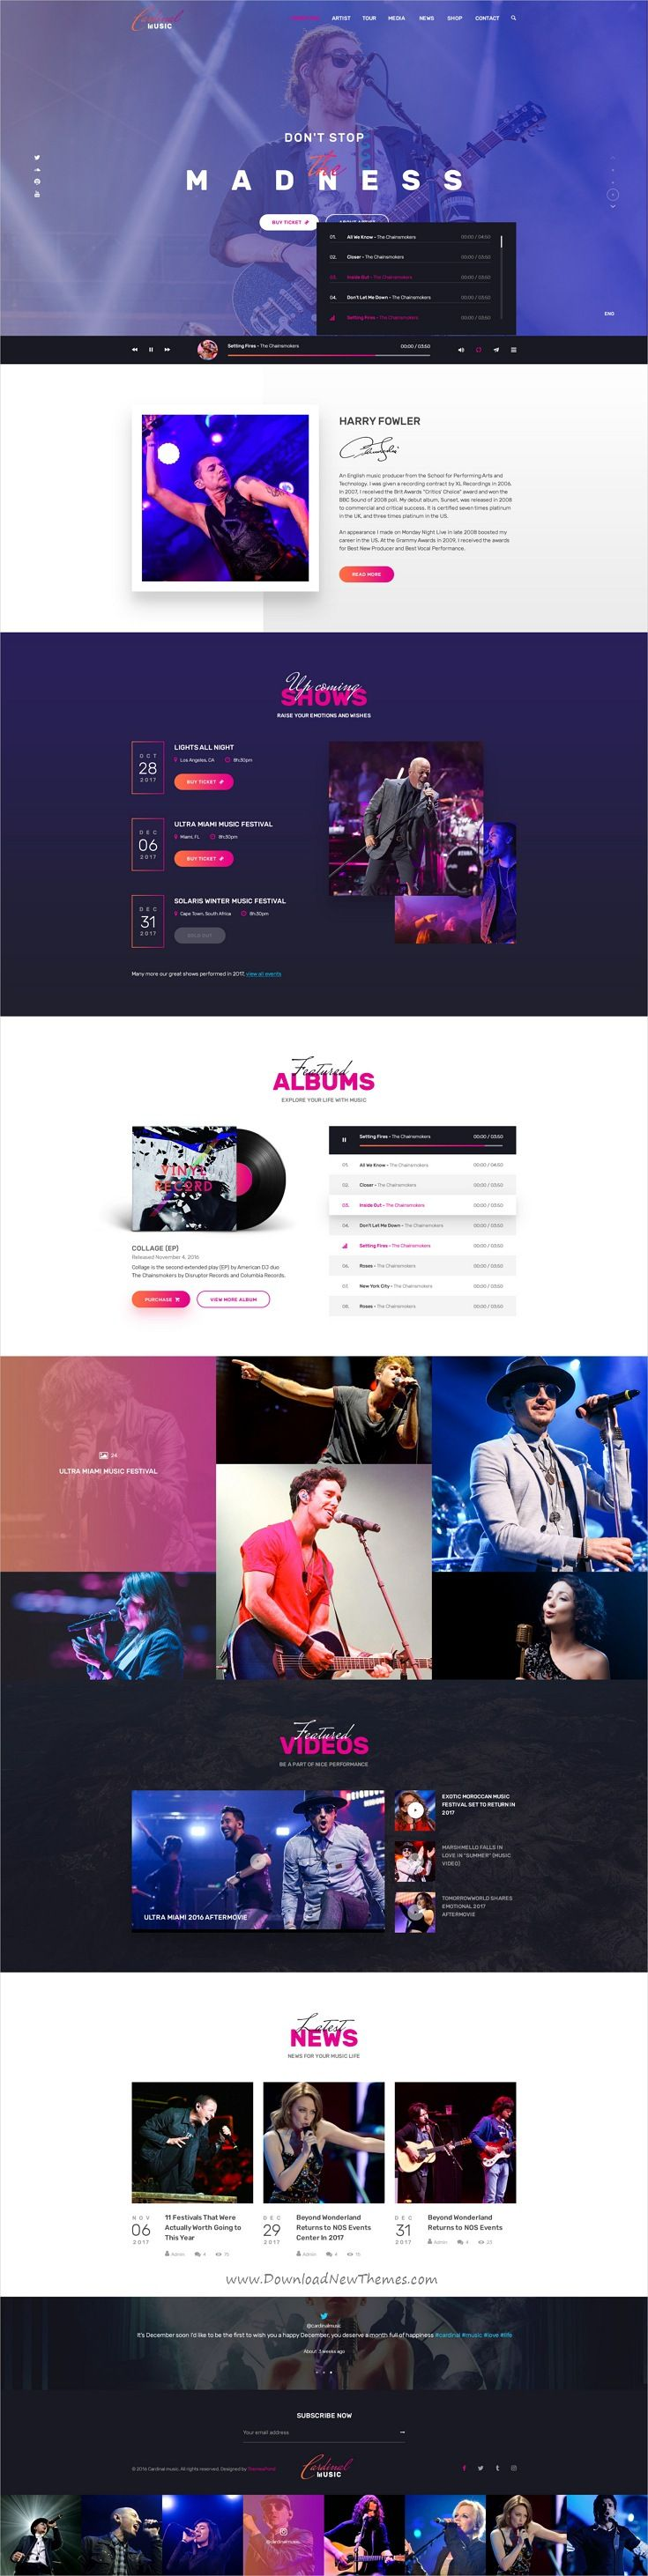 Cardinal is clean and modern design PSD template for #artists, #music bands and #musicians website with 37 layered PSD pages download now..